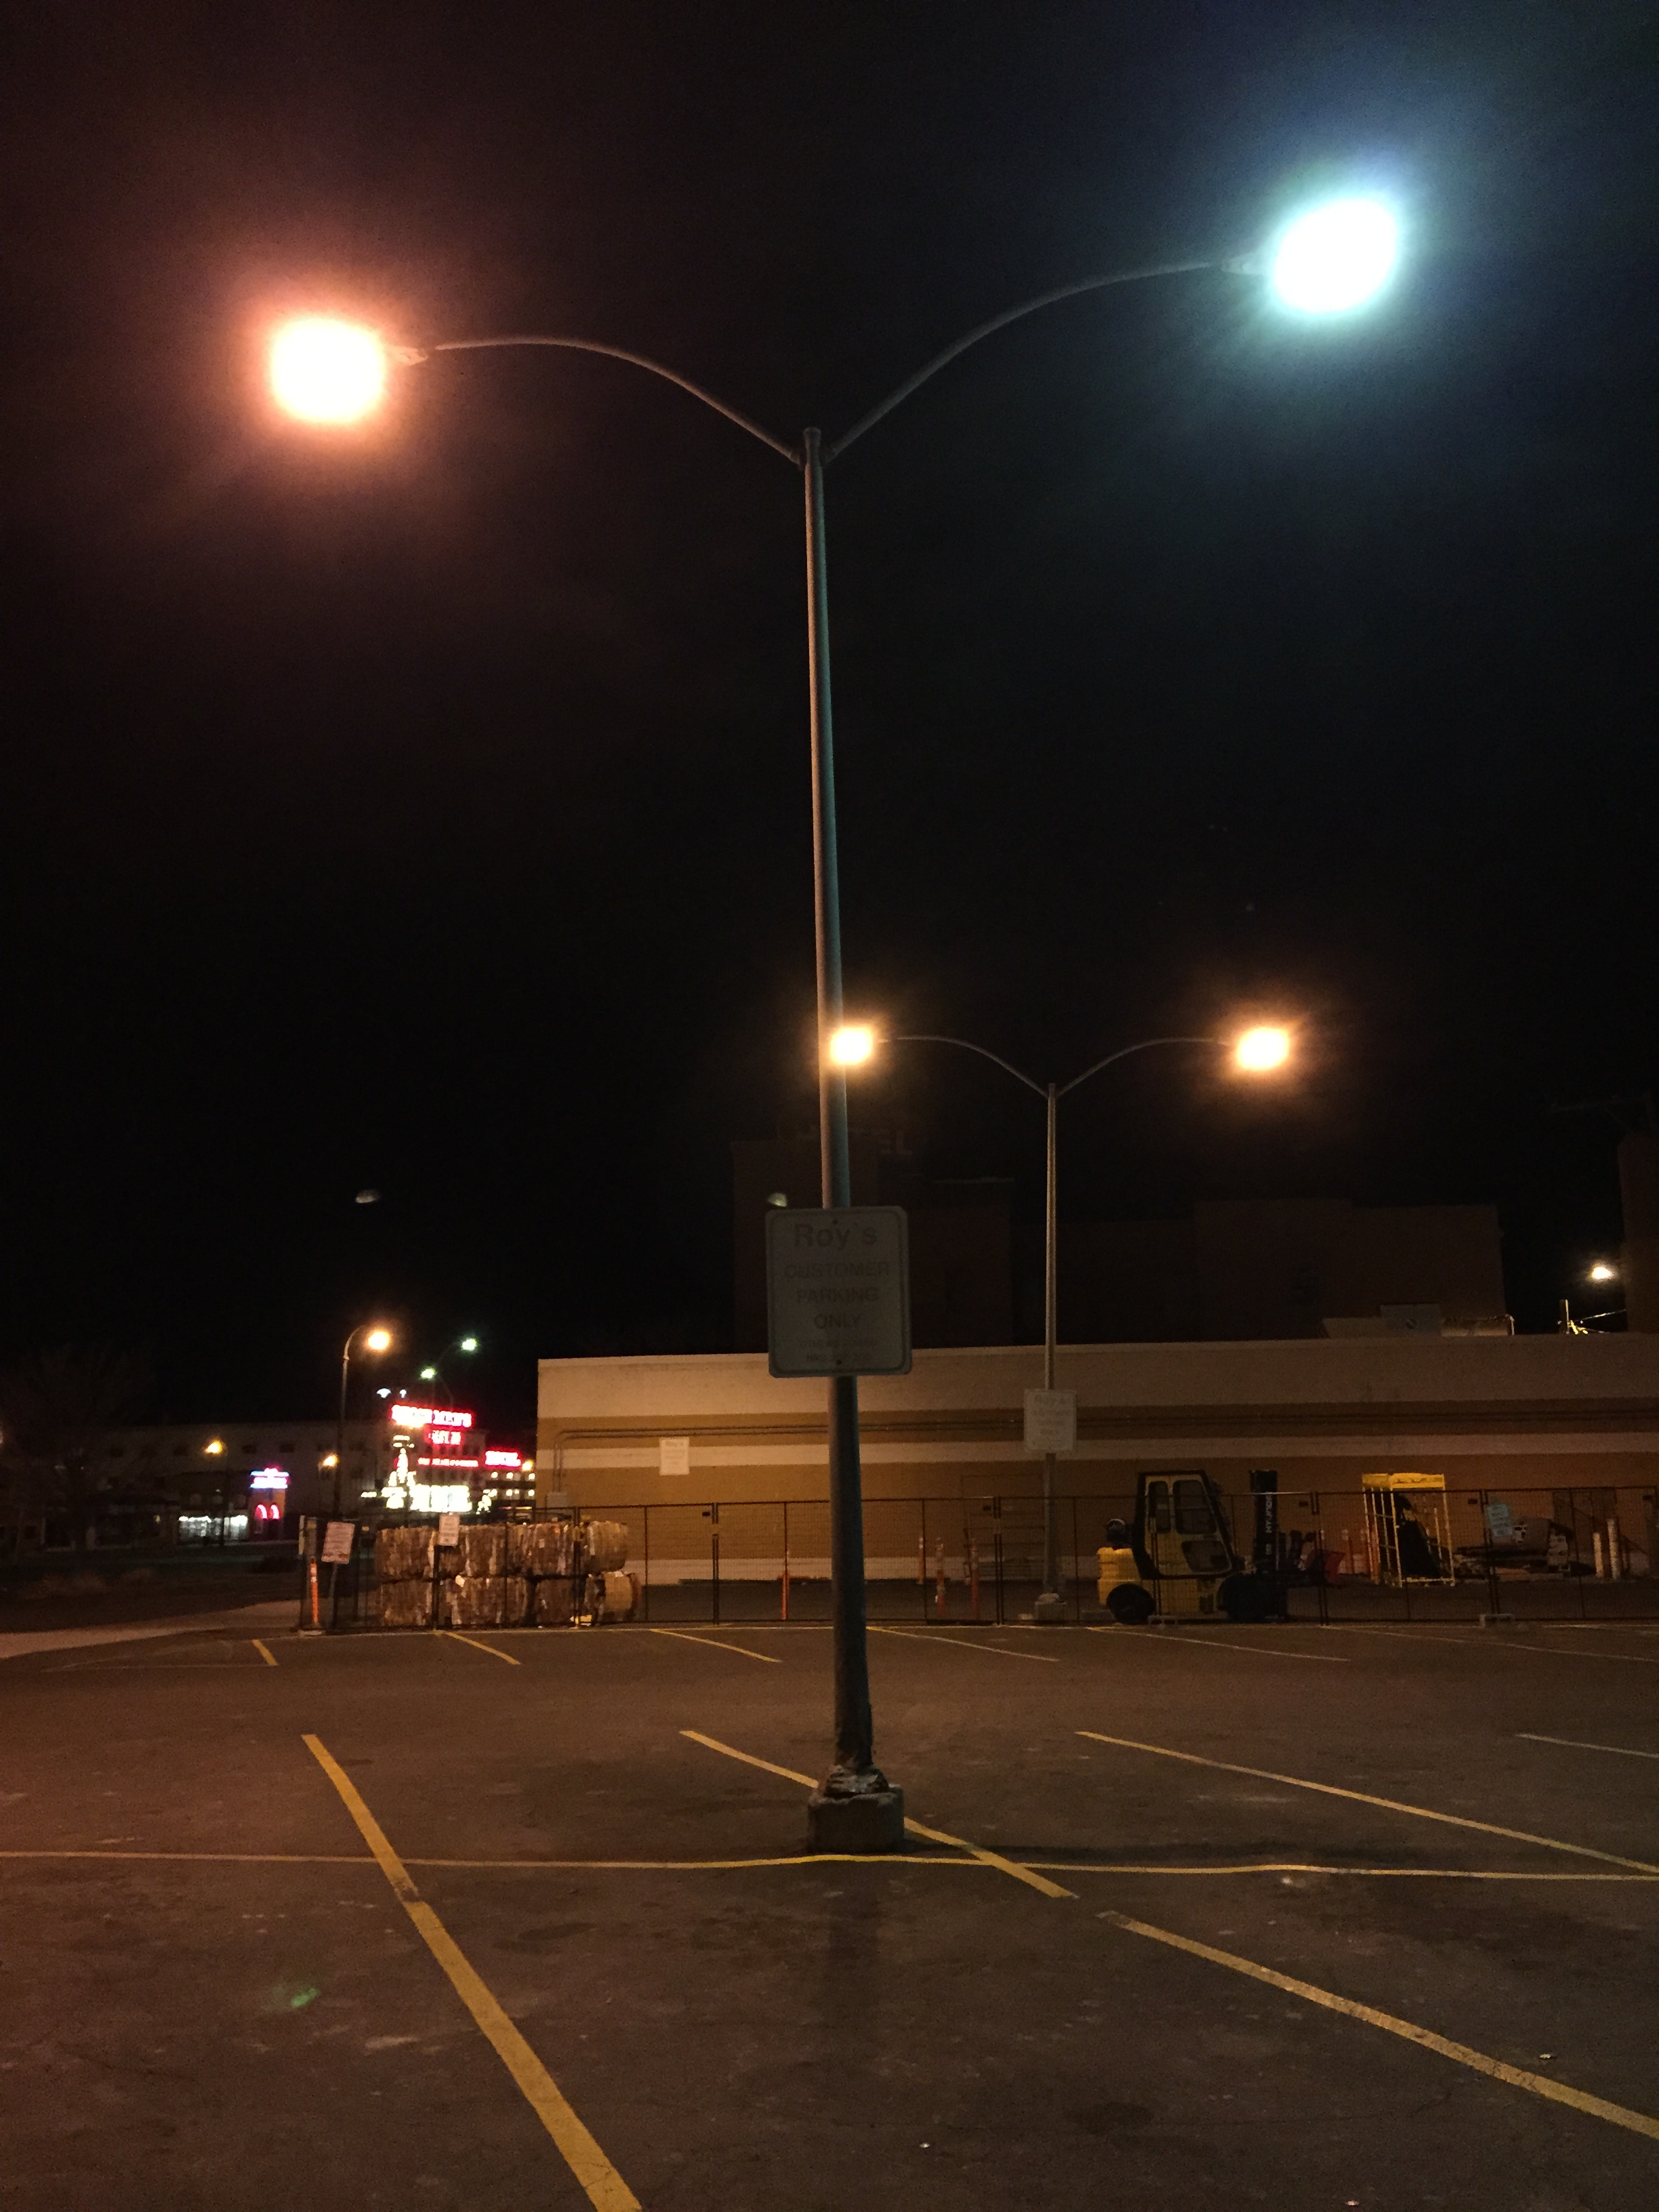 File:2015 02 09 02 48 45 Street Light Post With Both Sodium